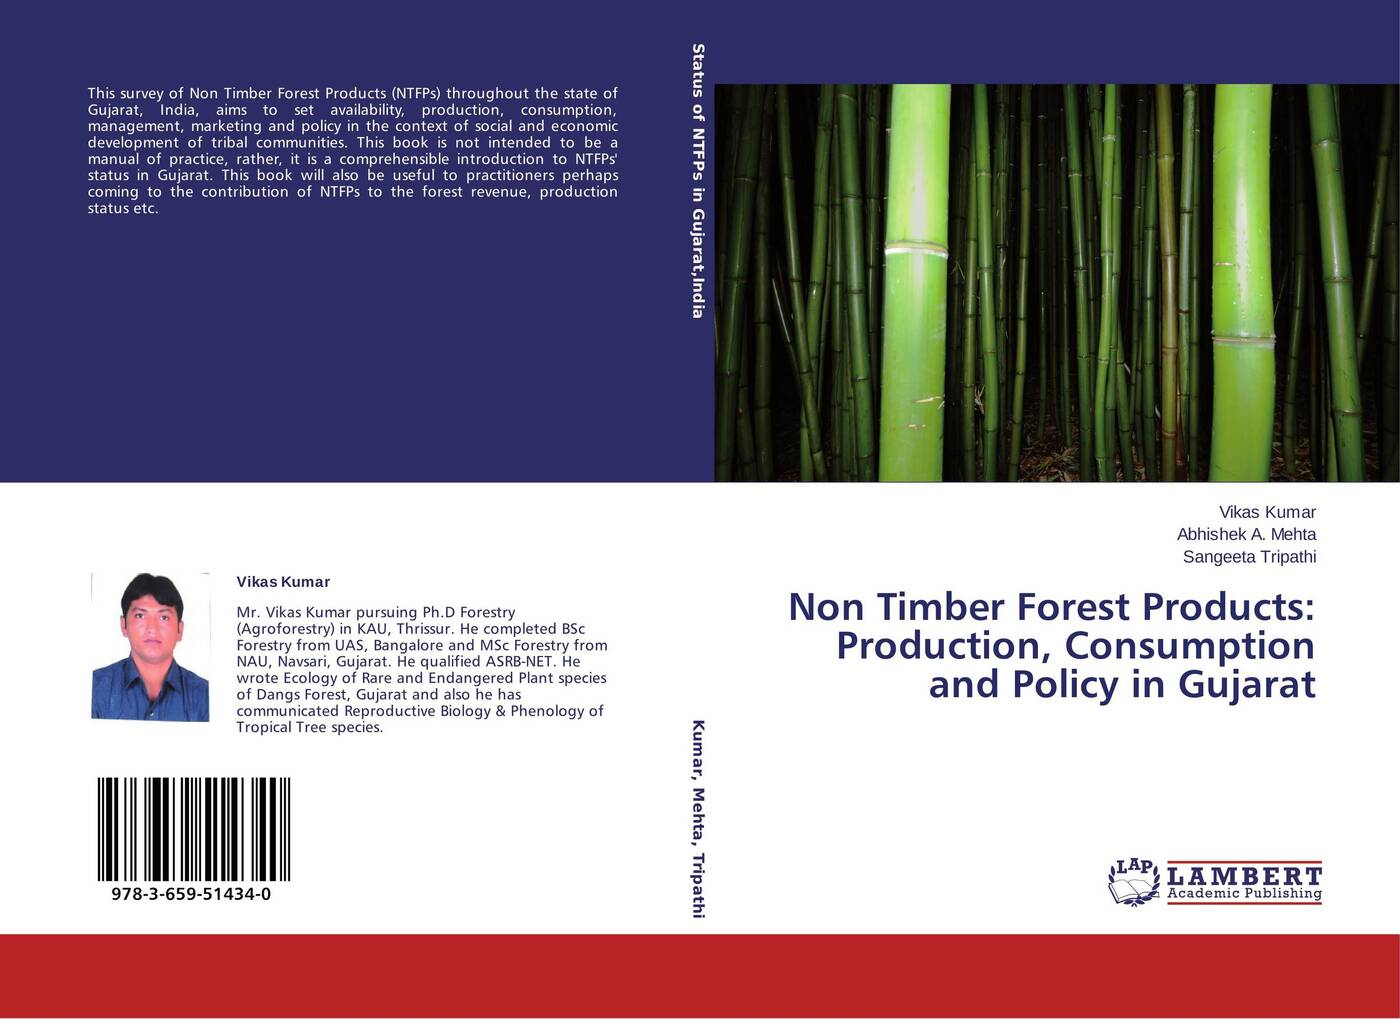 Vikas Kumar,Abhishek A. Mehta and Sangeeta Tripathi Non Timber Forest Products: Production, Consumption and Policy in Gujarat the introduction of the european advanced technology lisida company production lx 245b for non insulated cable links